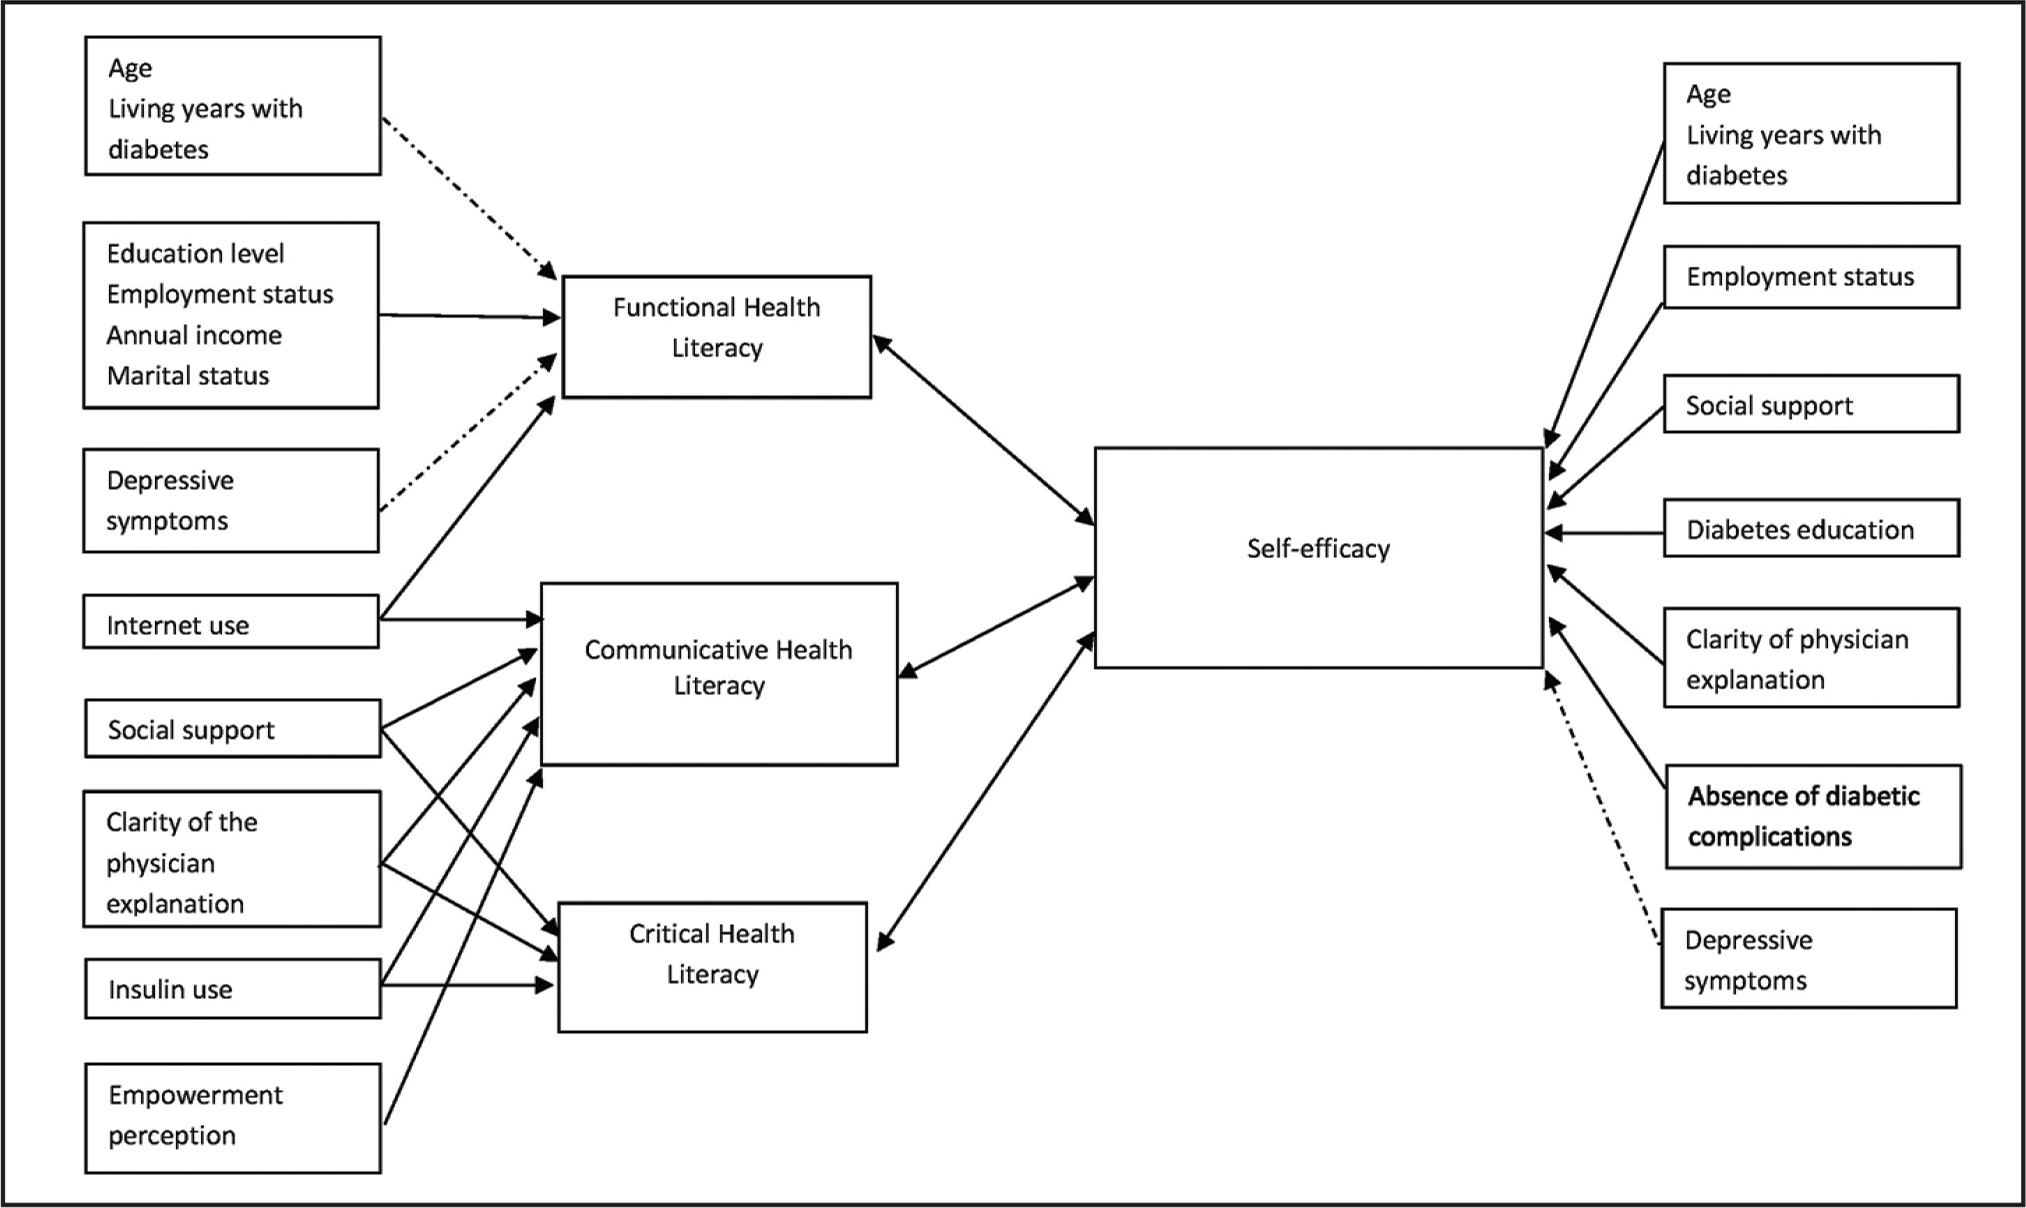 The relationship between health literacy and self-efficacy, and their associated factors. Solid arrow, postive relationship. Dotted arrow, negative relationship.